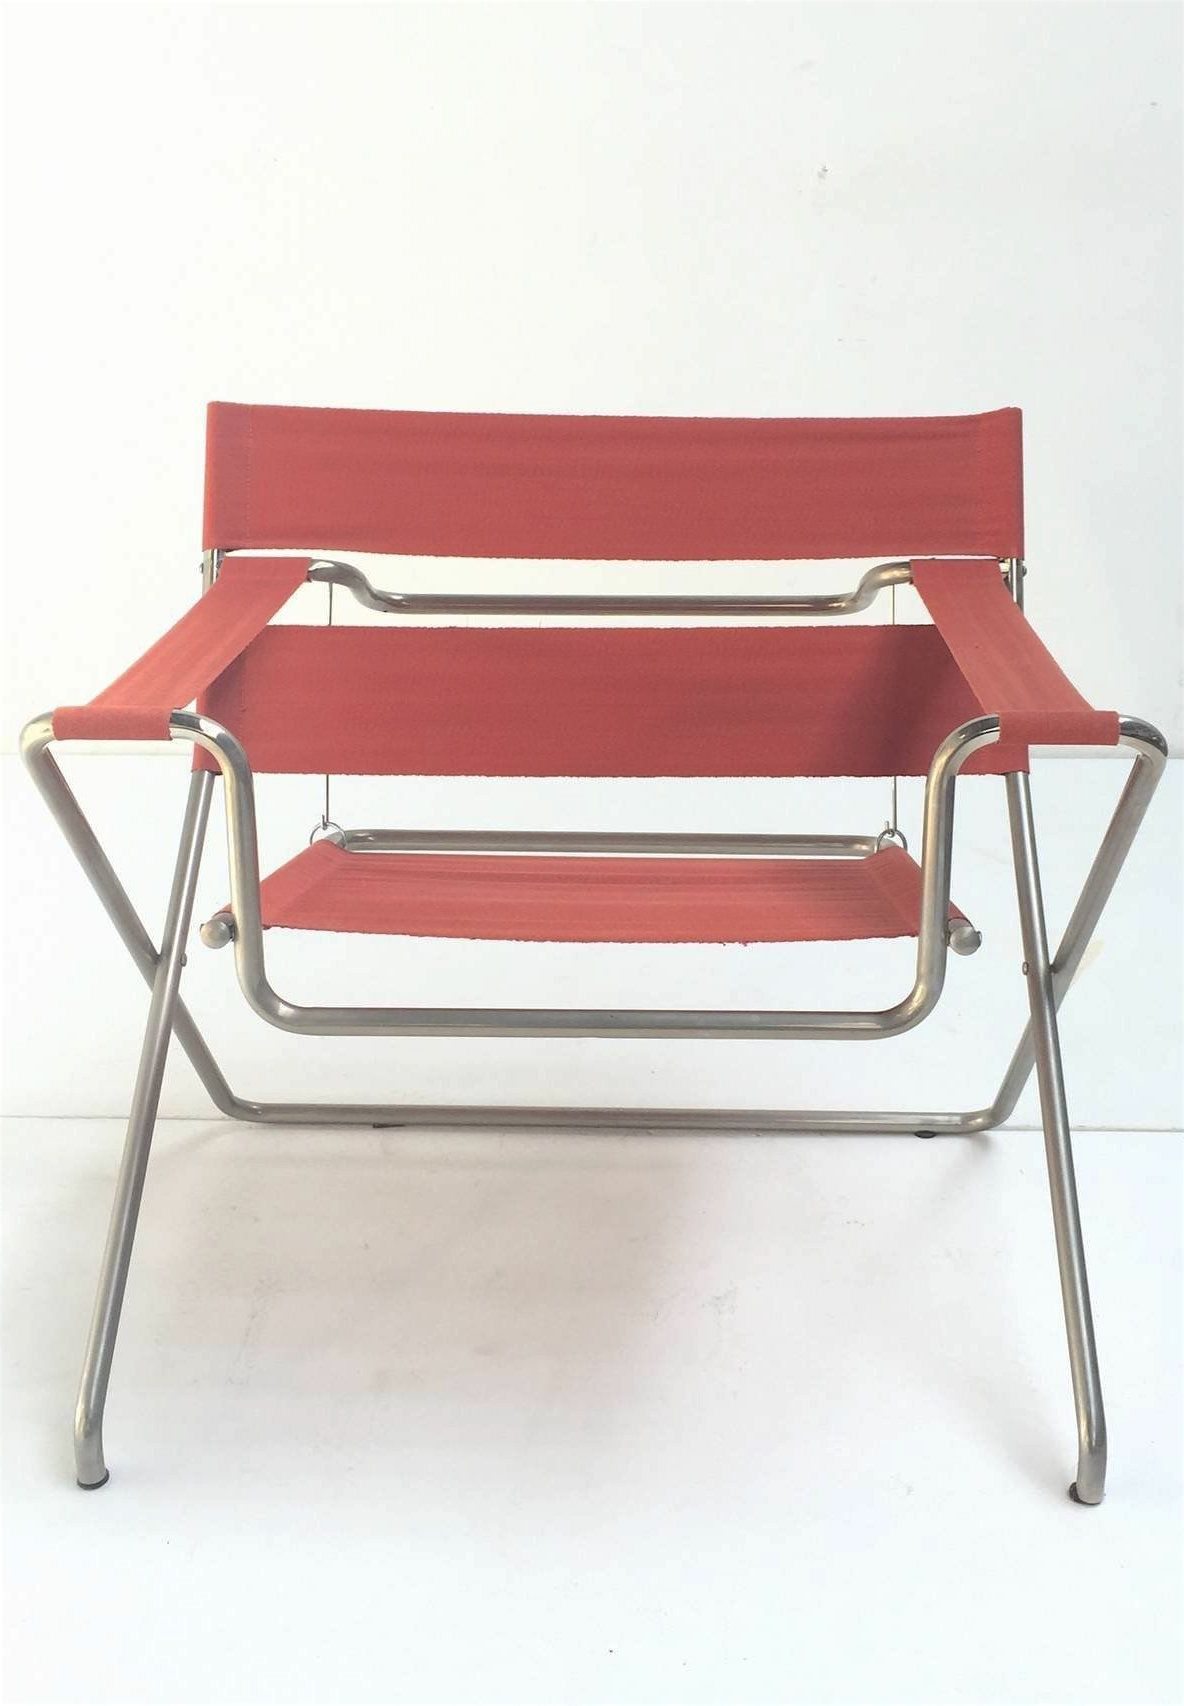 Bauhaus tubular steel lounge chair at 1stdibs - View This Item And Discover Similar Lounge Chairs For Sale At This Design Icon Of The Bauhaus Period Original Design Was Purchased By A Driven Dutch Art